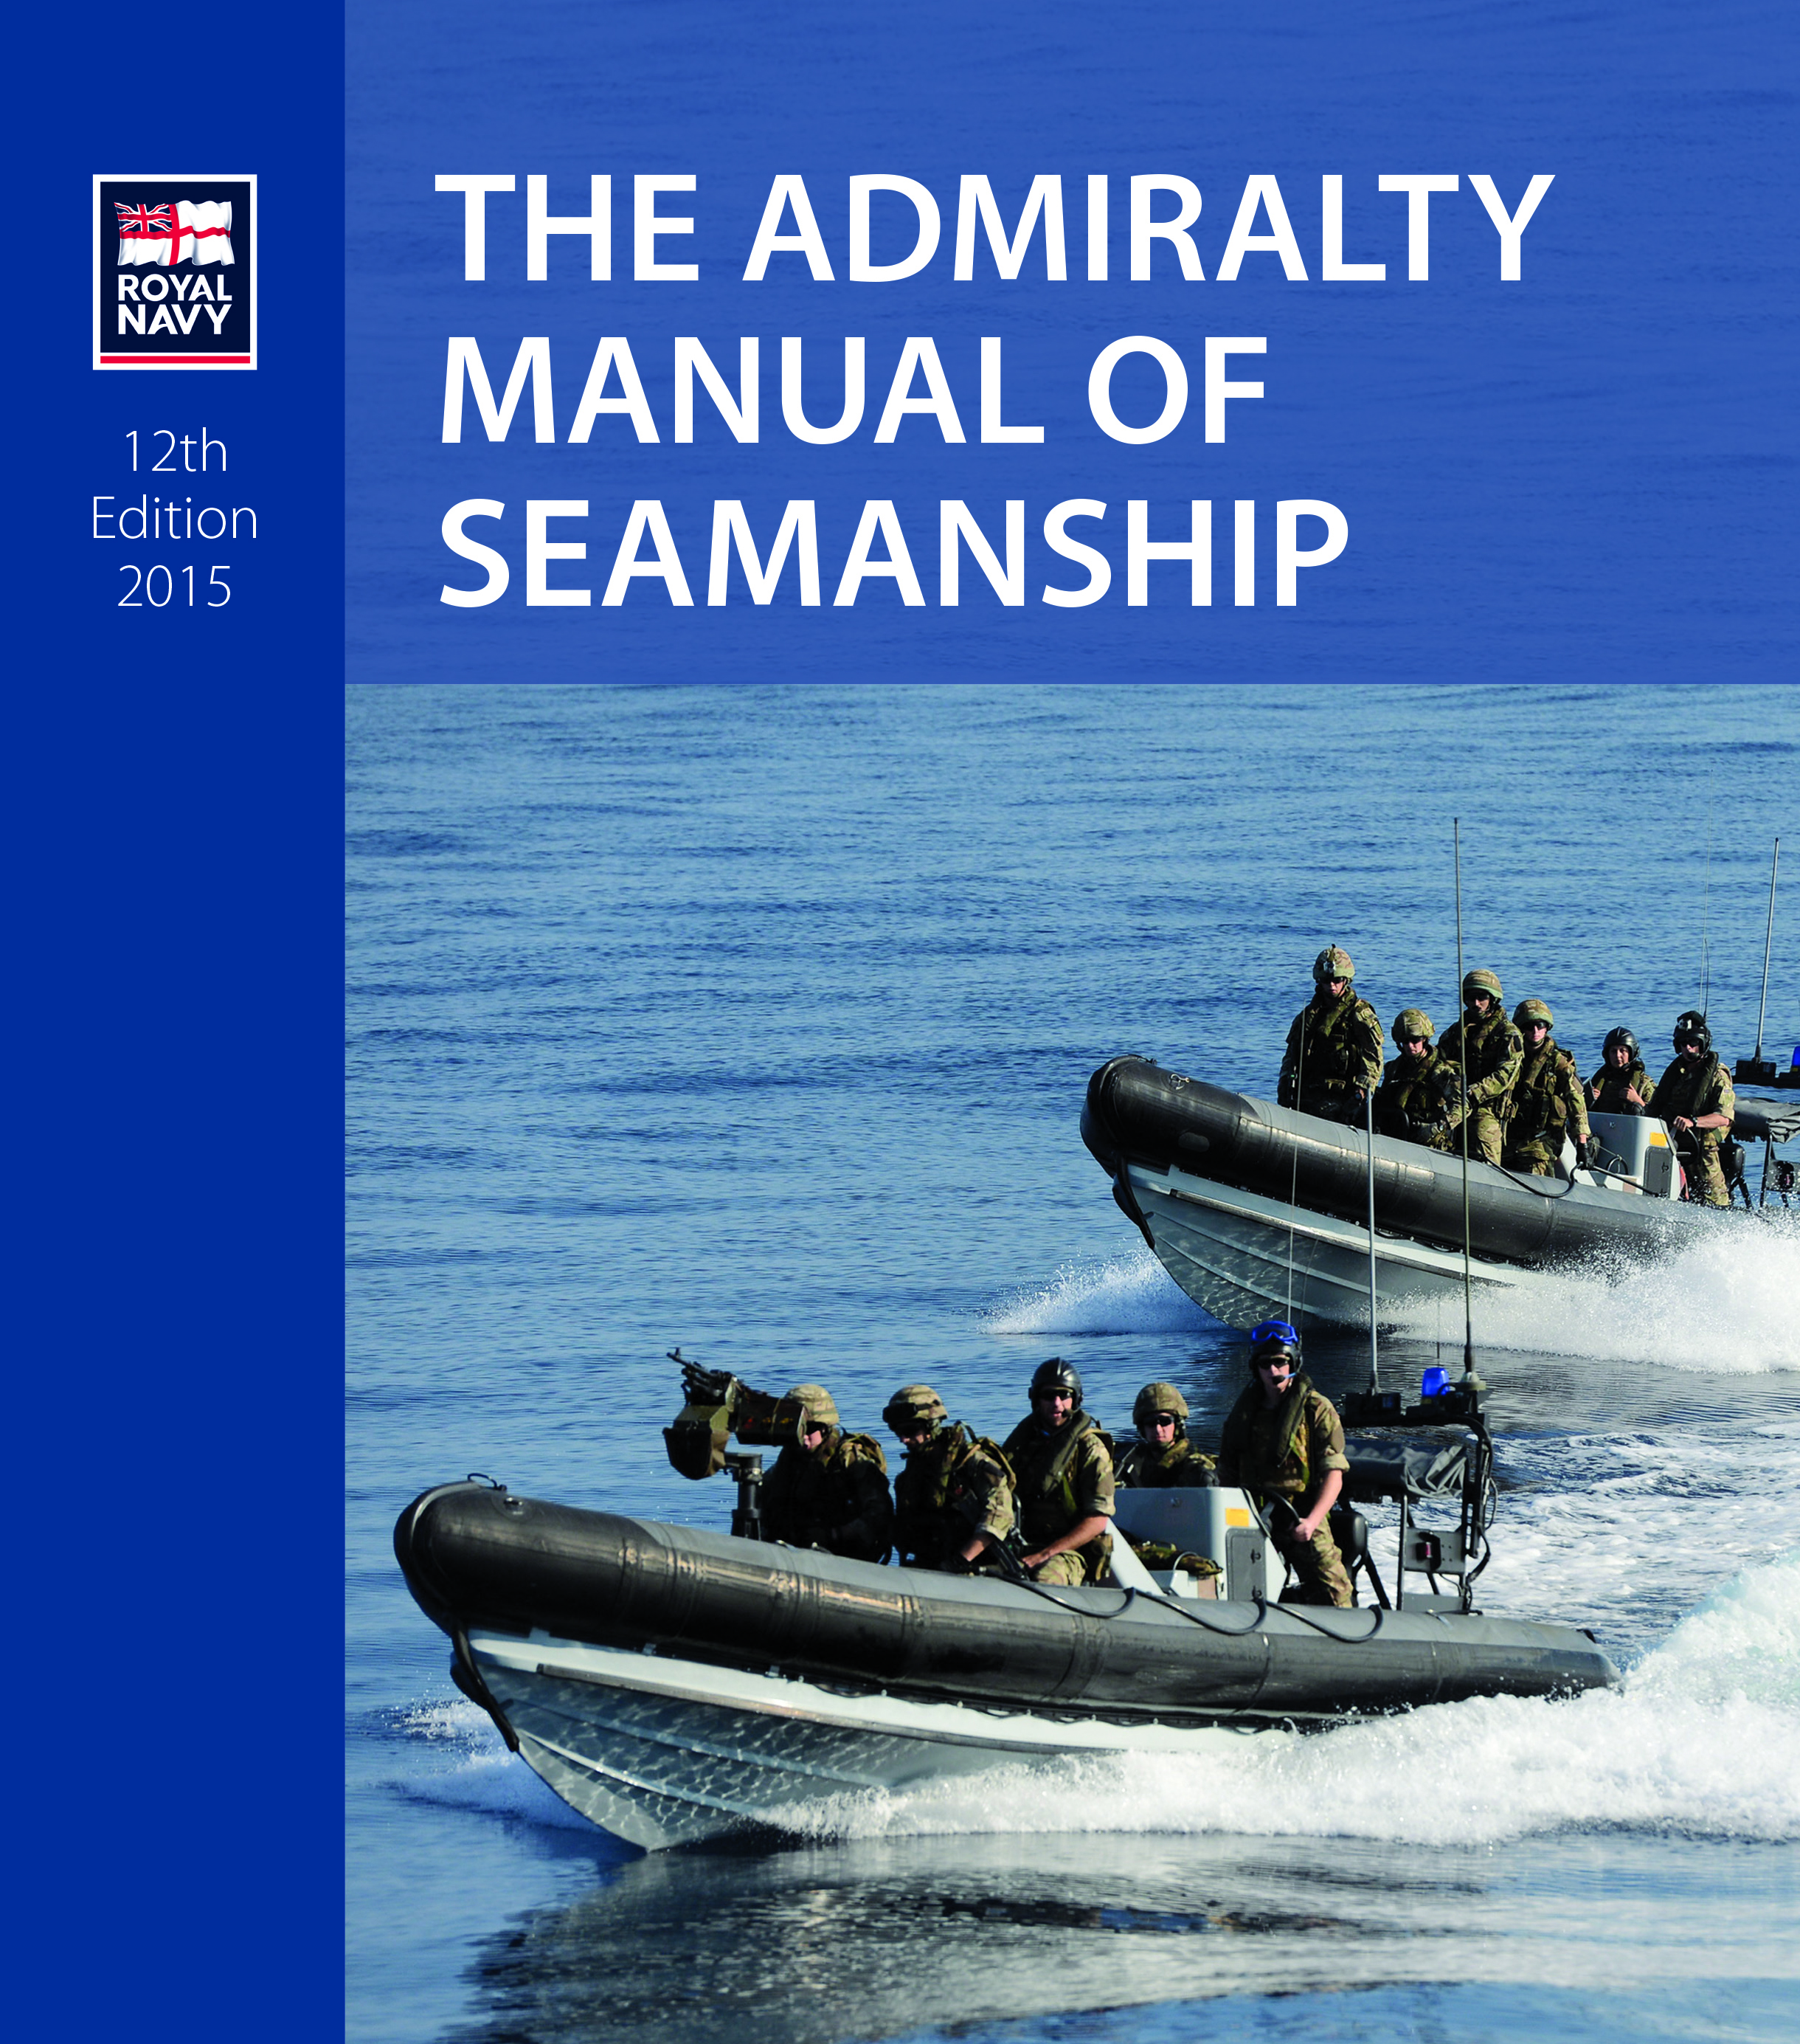 An excellent standard of seamanship is more difficult to achieve was the  message at the launch